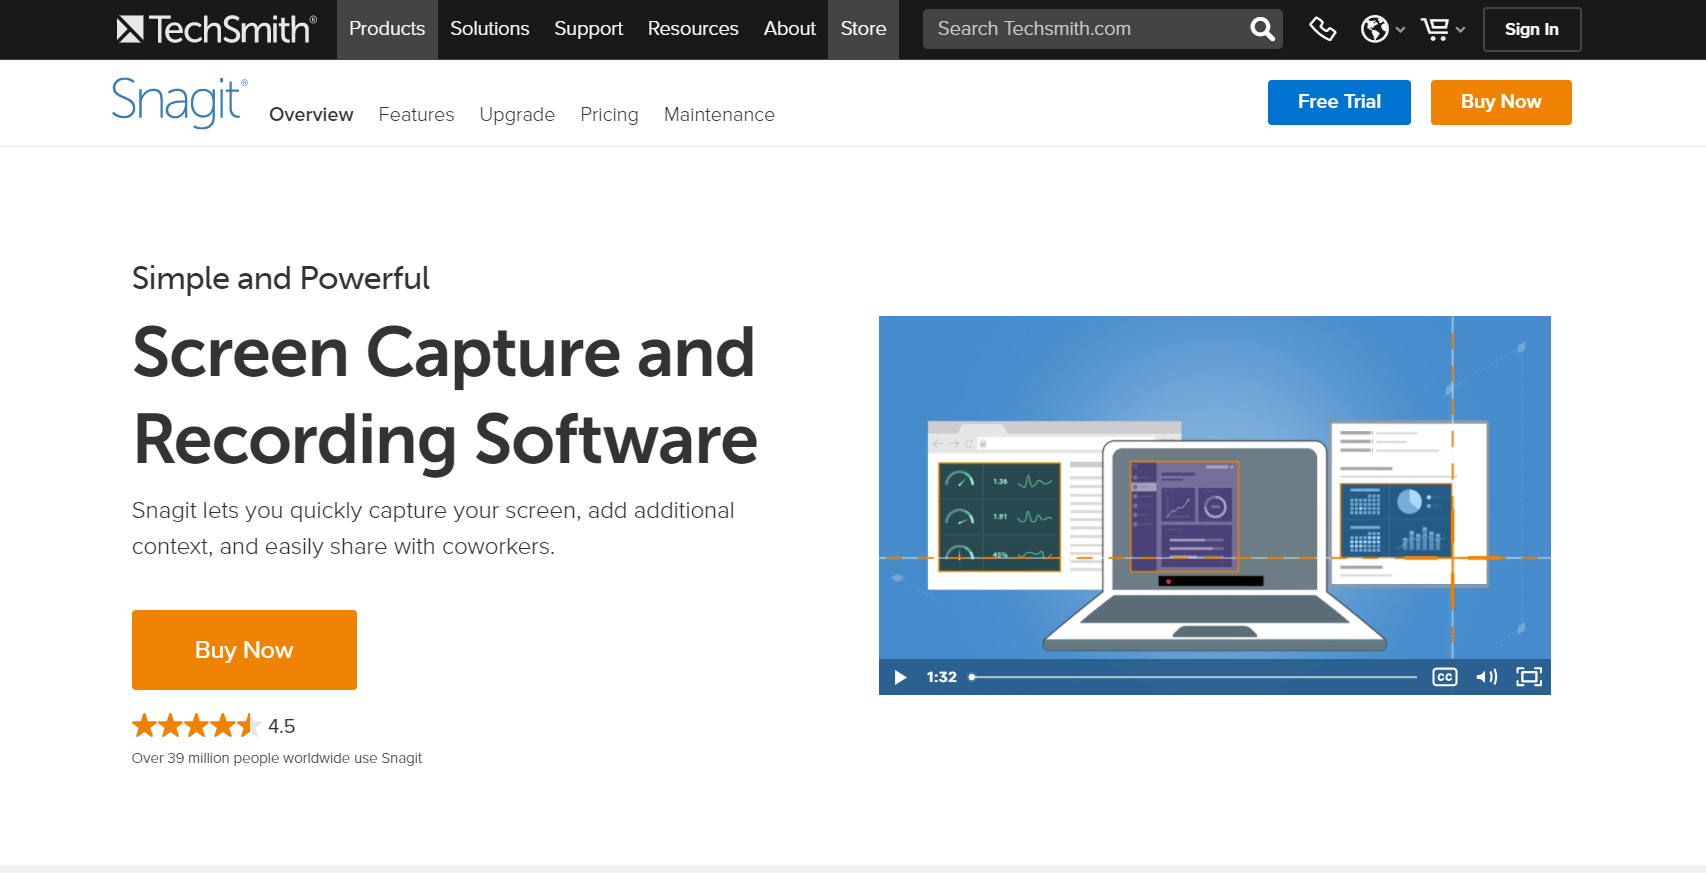 Snagit homepage: Screen capture and recording software; Snagit lets you quickly capture your screen, add additional context, and easily share with coworkers.